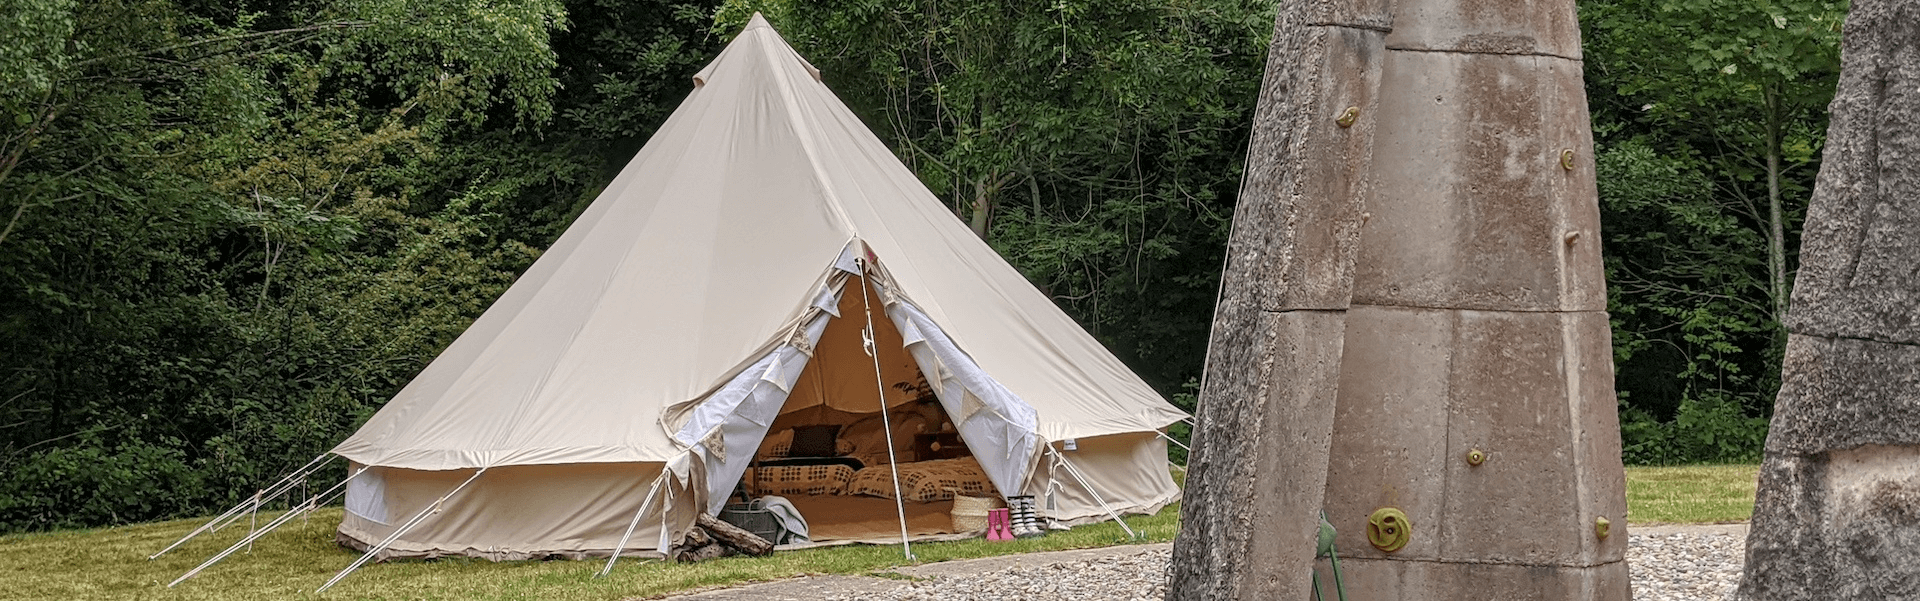 Boundless Outdoors Glamping Banner